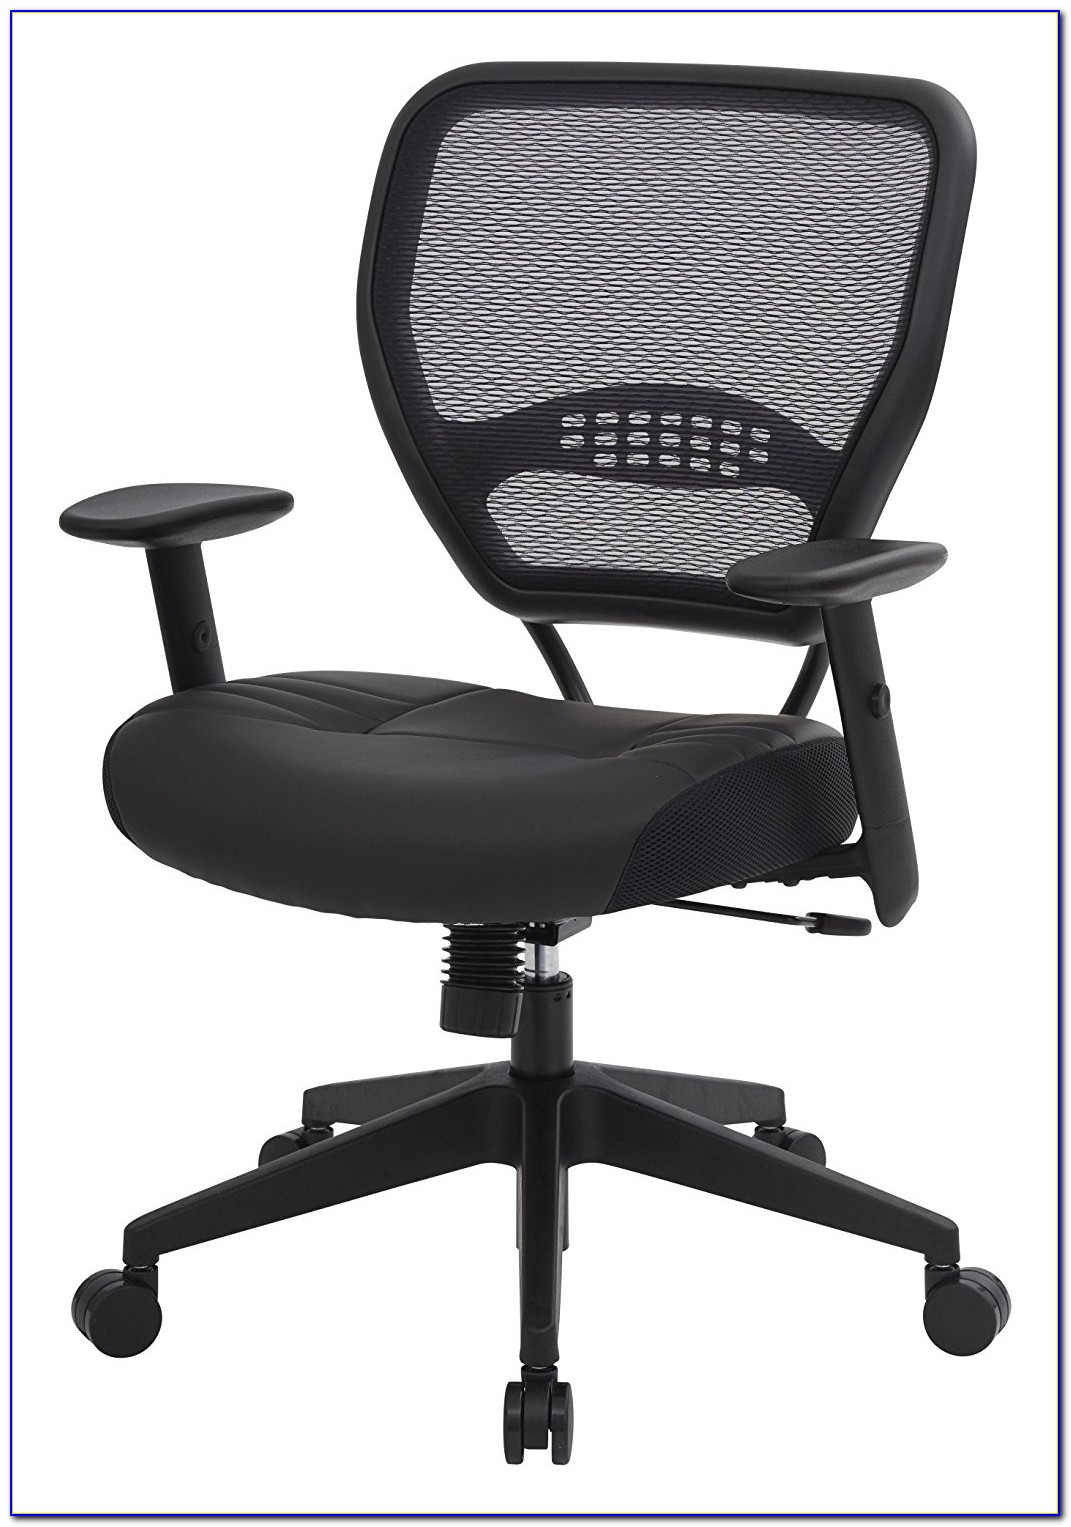 Best Office Chair For Back Pain Singapore